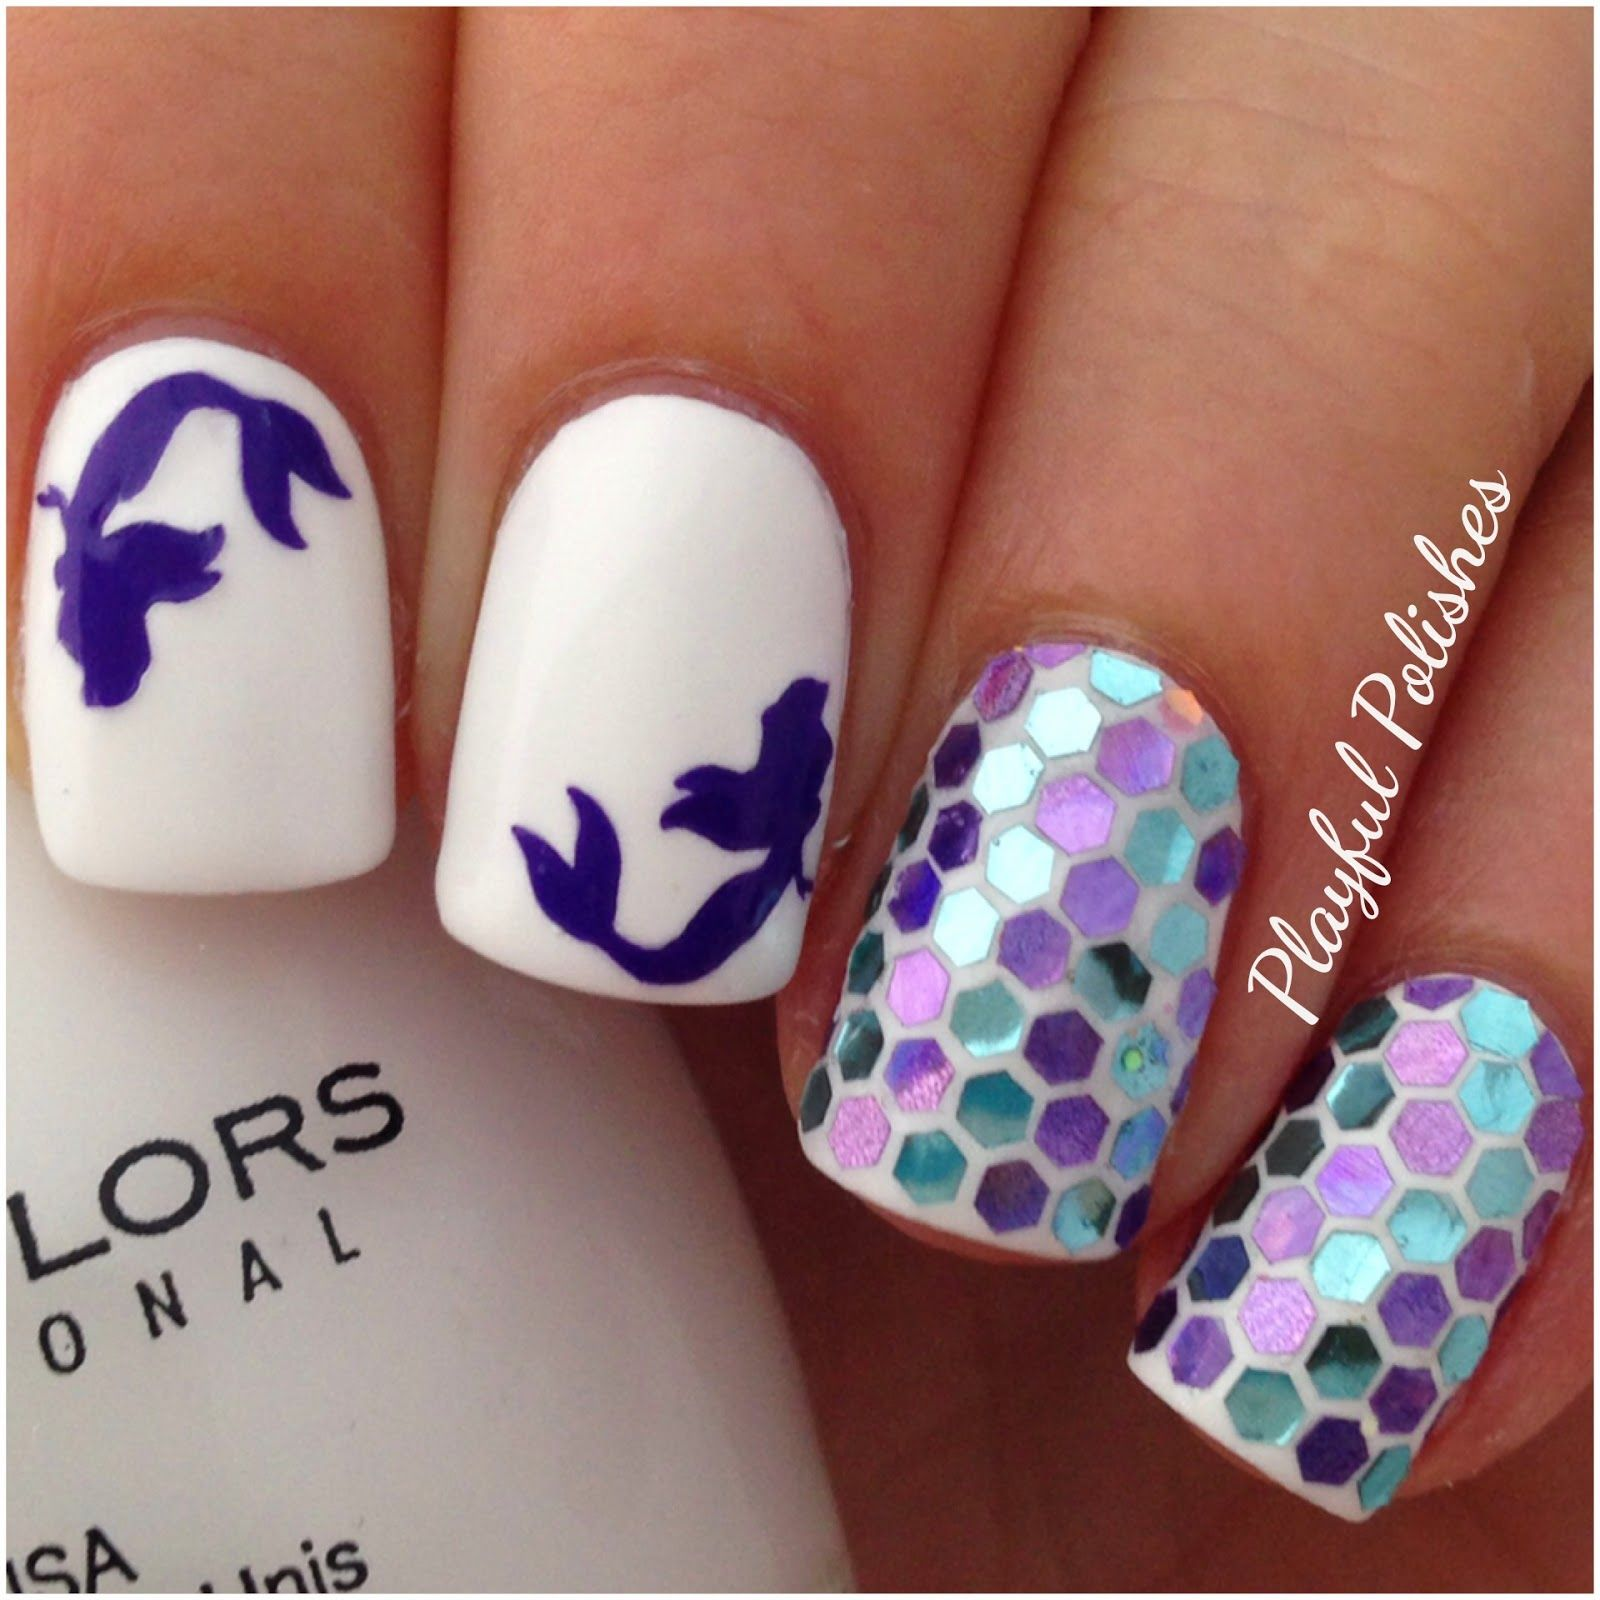 tahliabaaum | Nails | Pinterest | Nagelschere, Nageldesign und Glitter